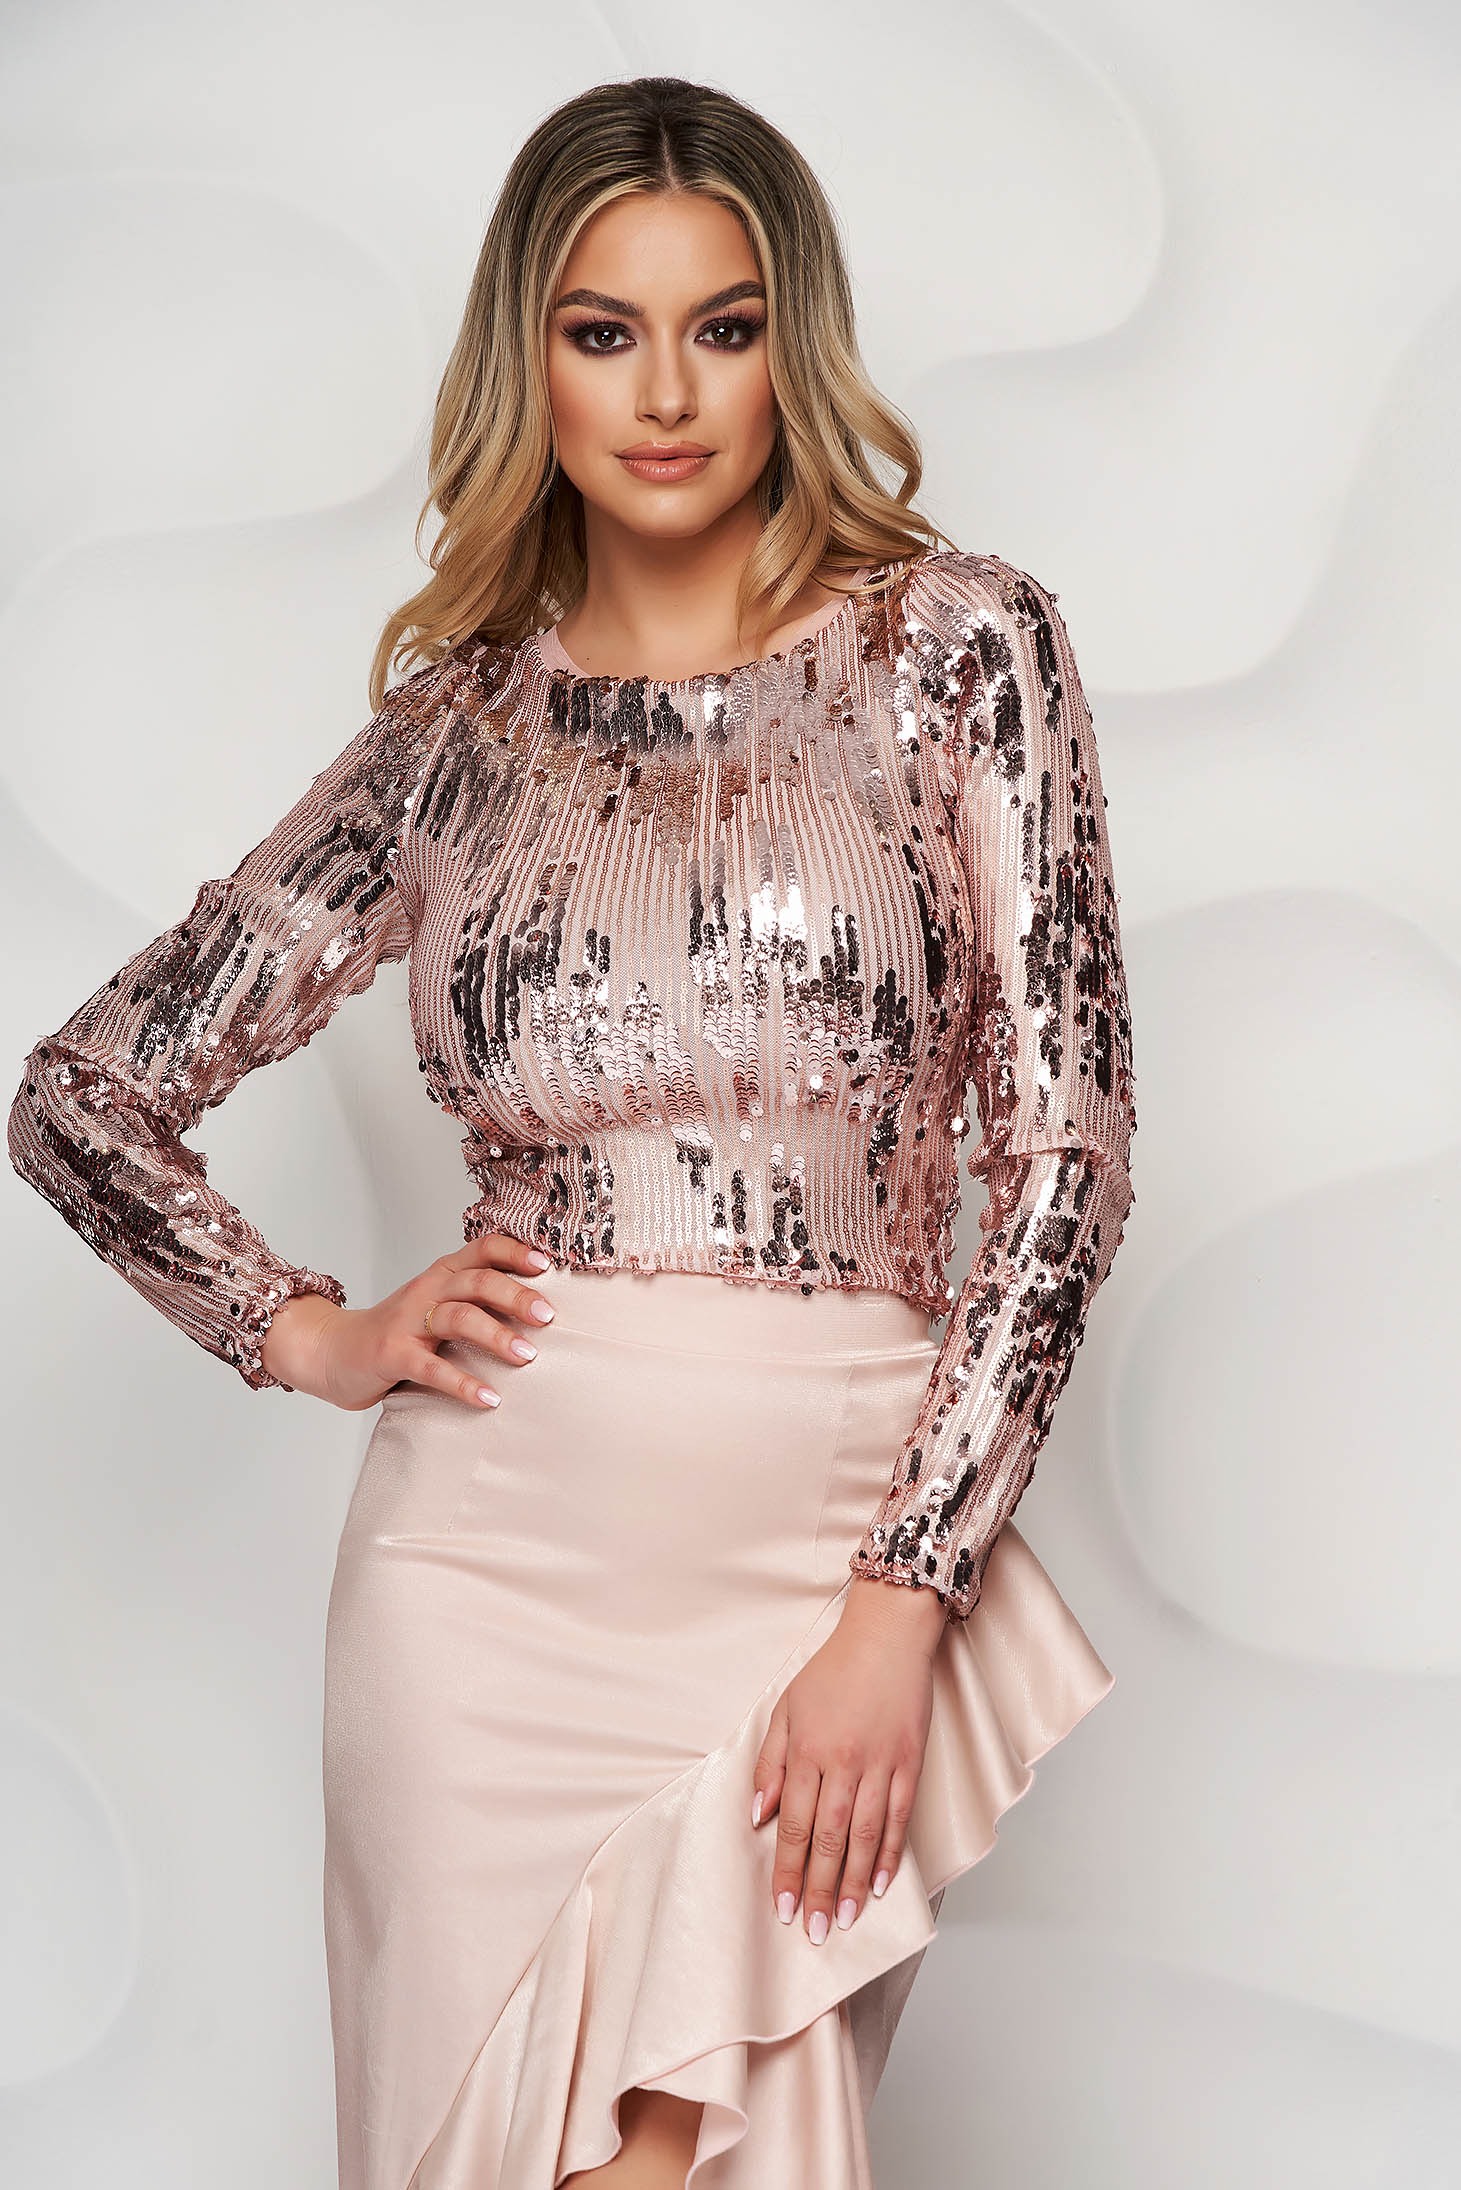 StarShinerS pink top shirt elegant with sequin embellished details tented occasional